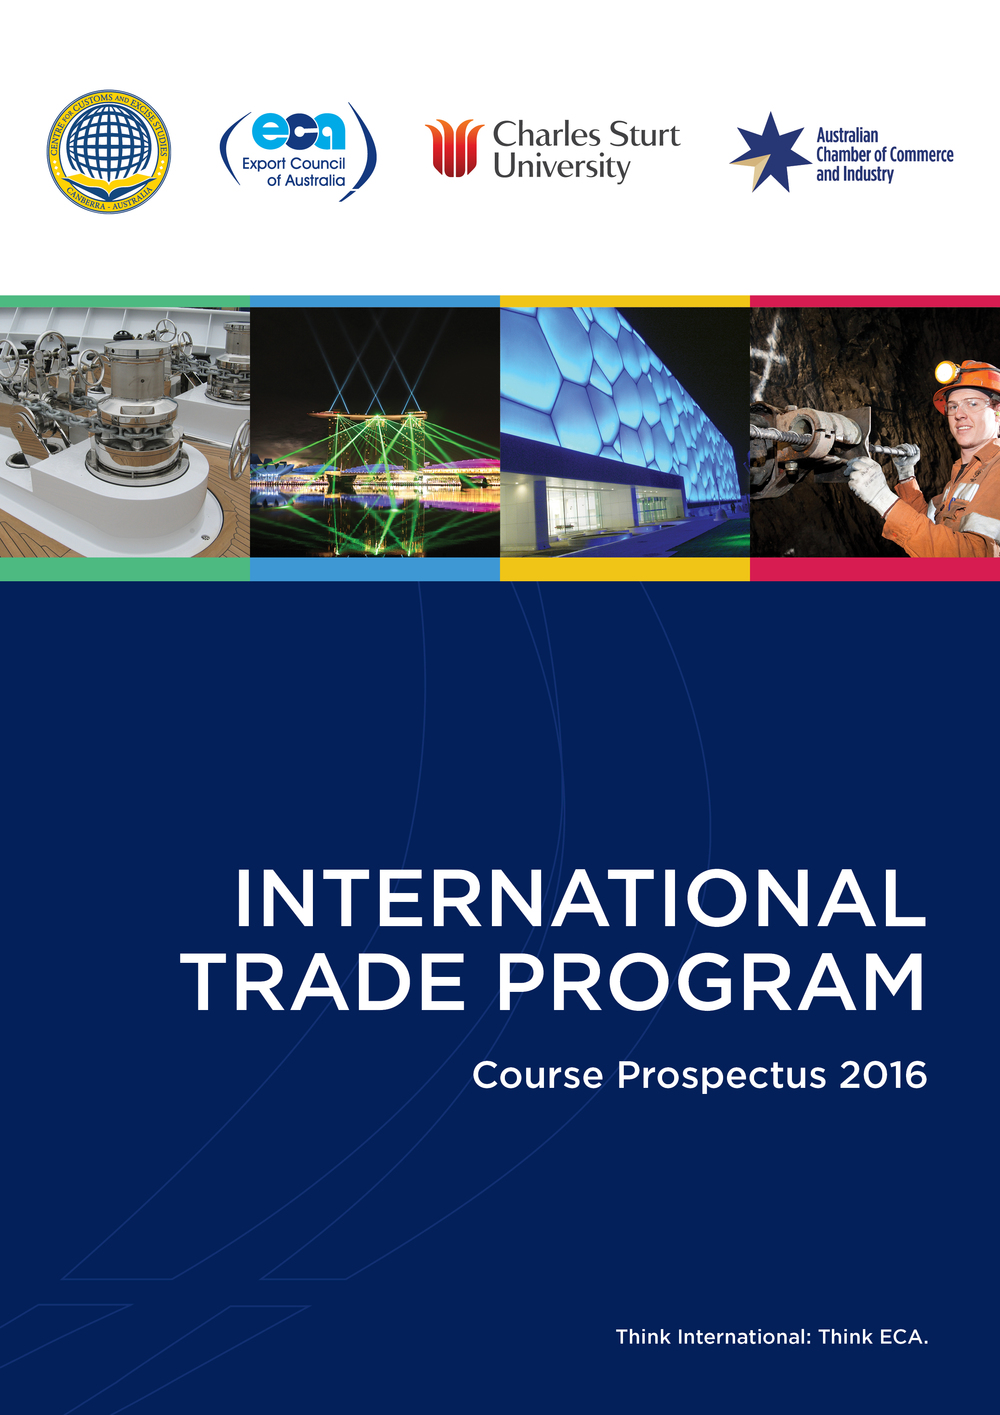 course-prospectus-cover-20160506.jpg